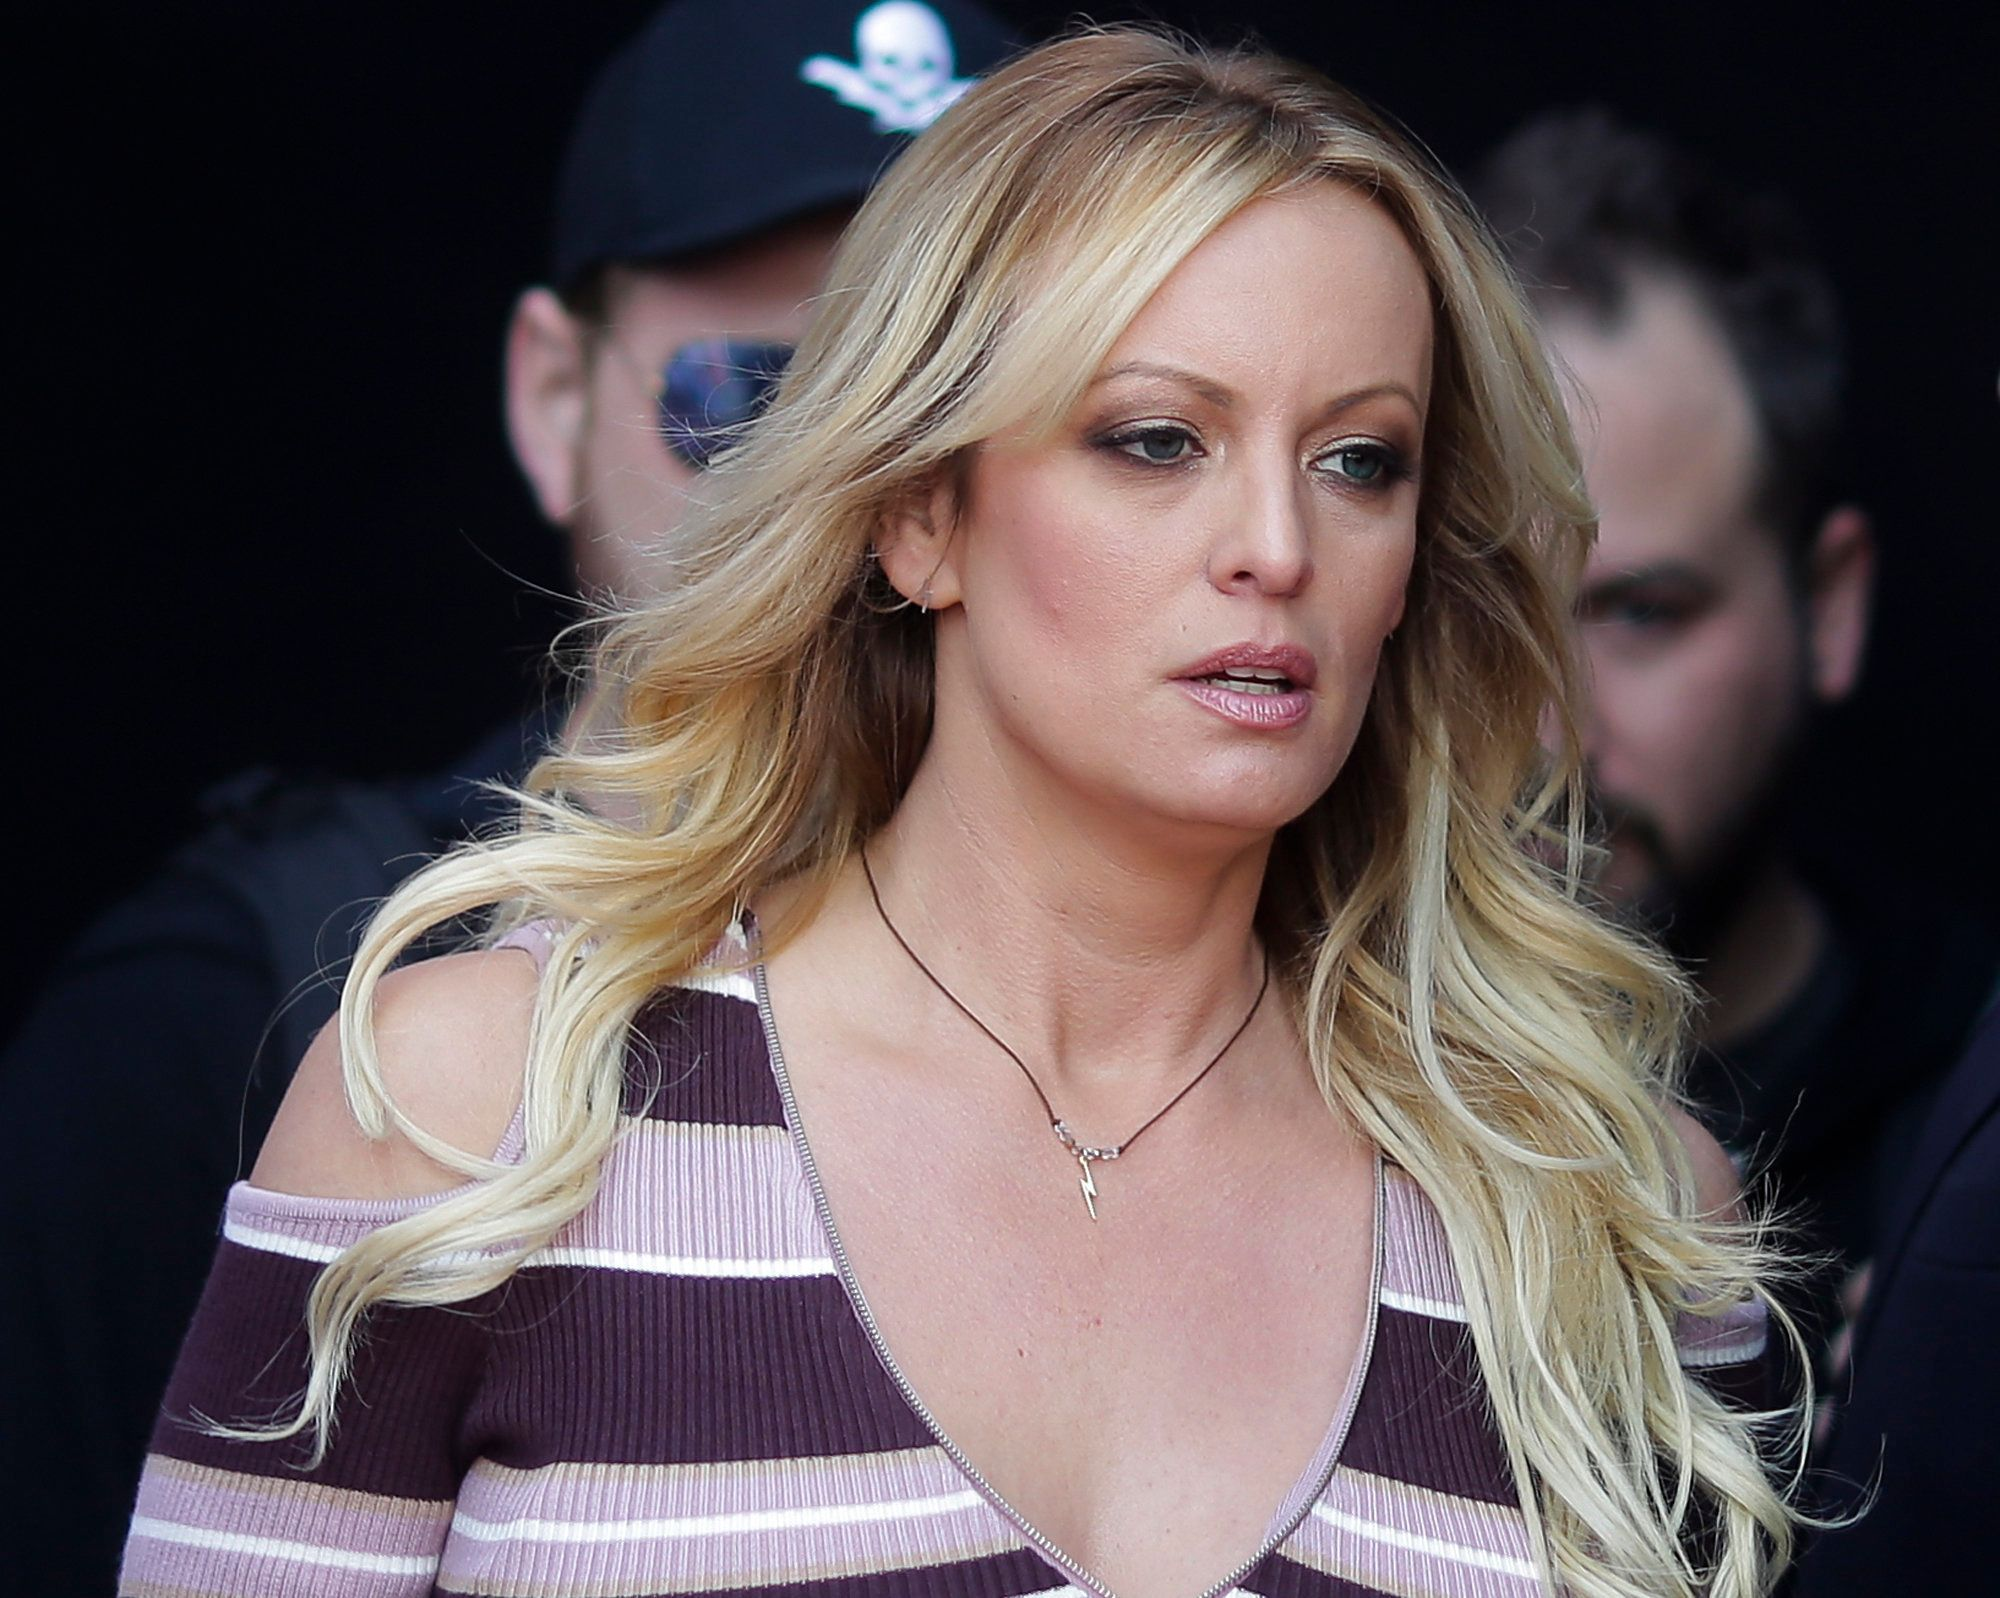 Stormy Daniels Ordered To Pay Nearly $300,000 In Trump's Legal